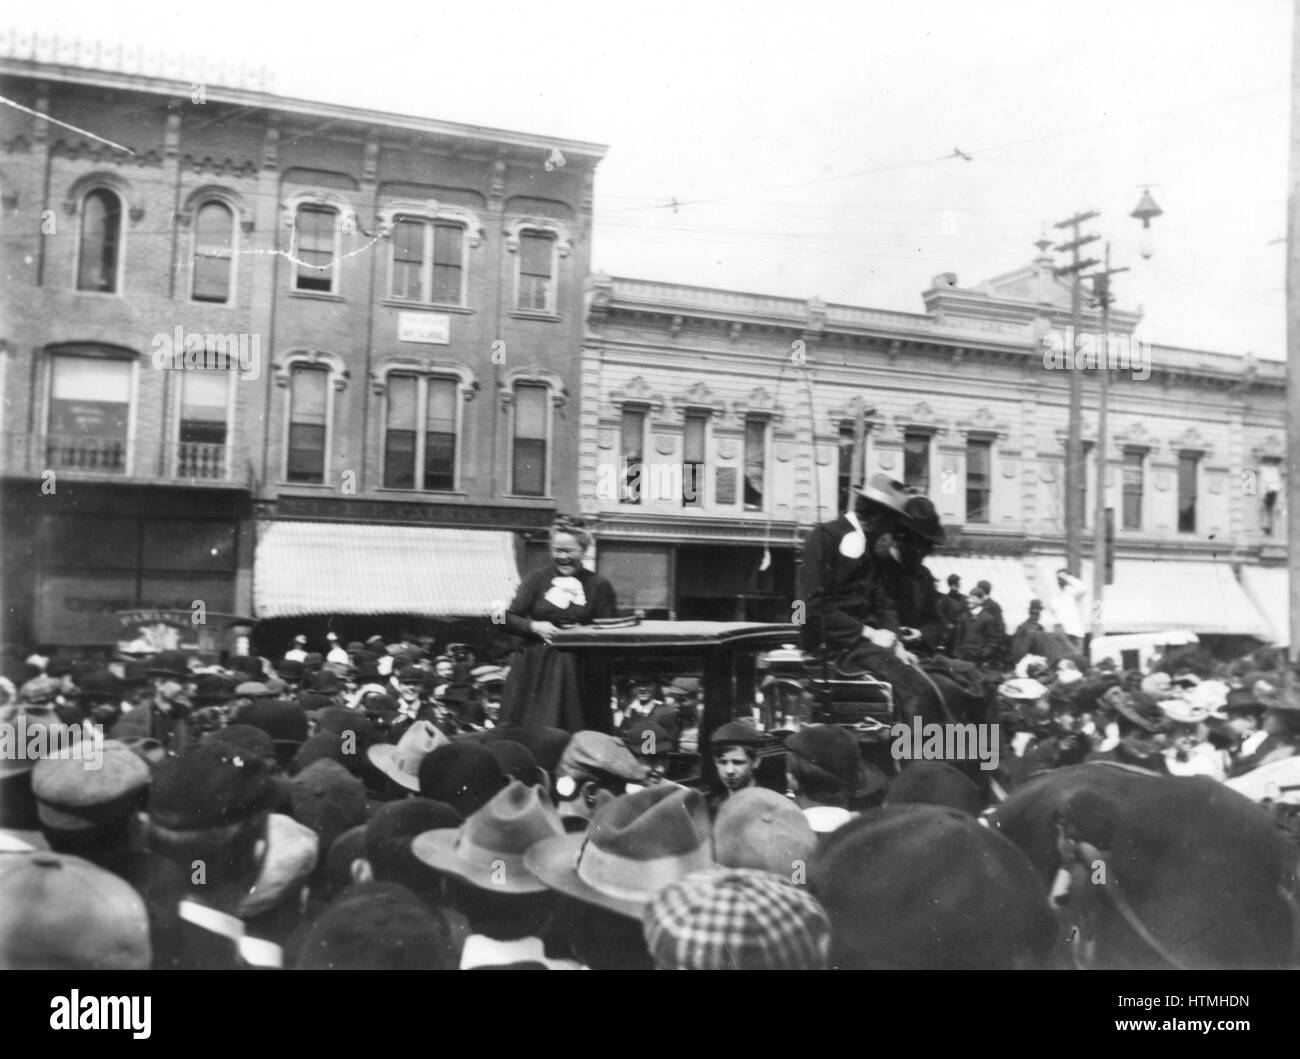 Prohibition advocate Carrie Nation, known for smashing up saloons, was mocked by students at a rally in 1902 on - Stock Image